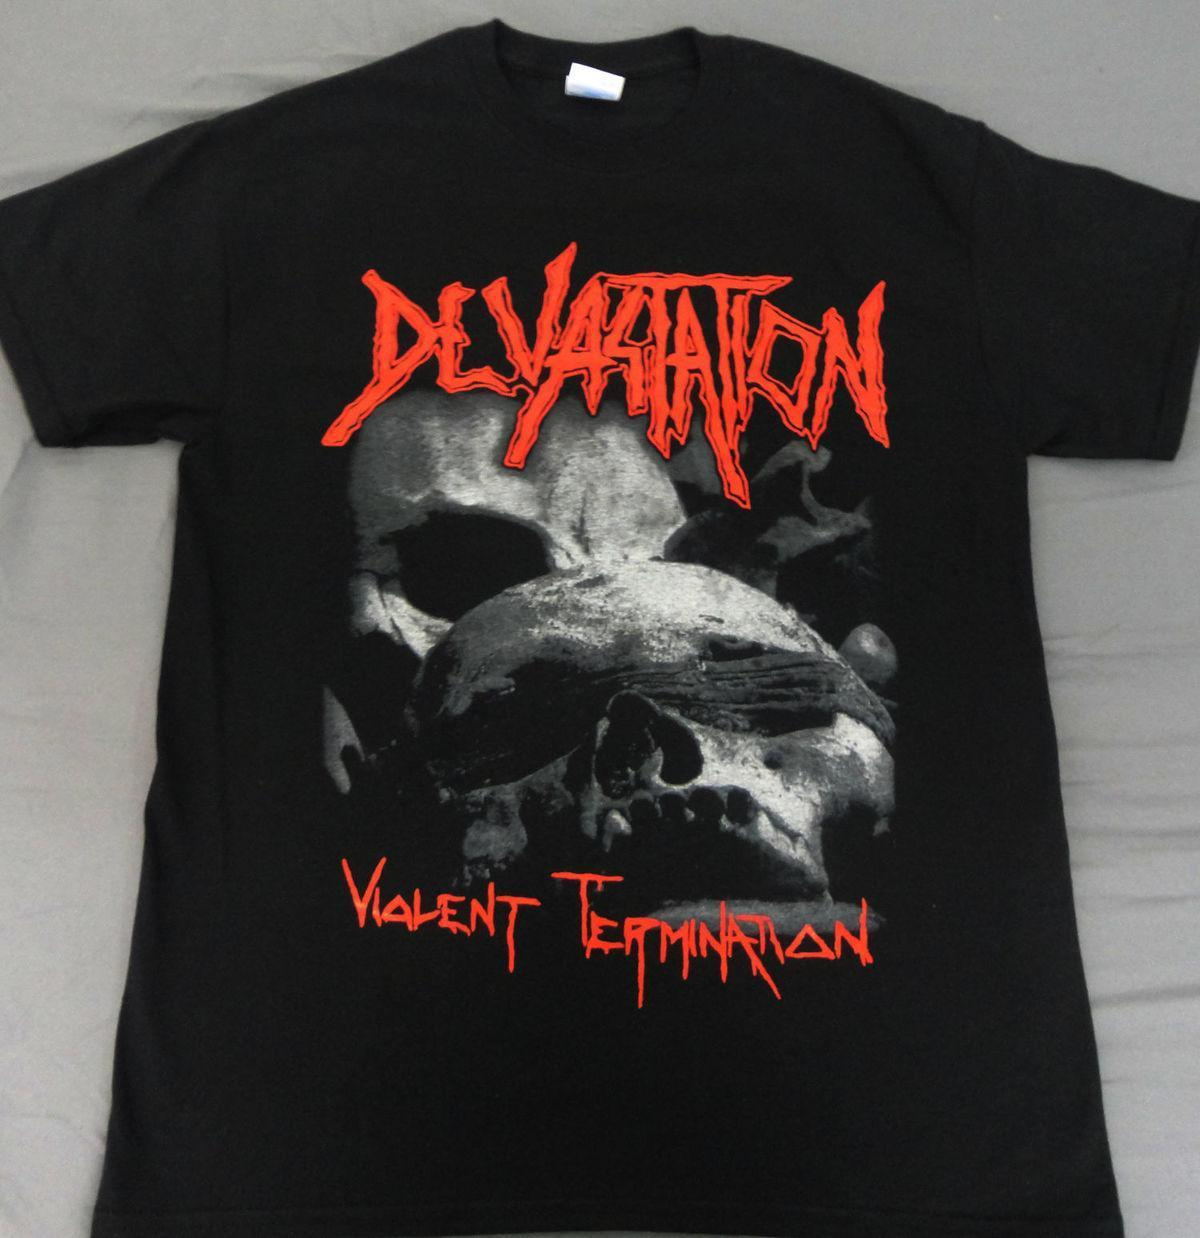 DEVASTATION - VIOLENT TERMINATION, MEDIUM T Shirt Cotton Low Price Top Tee for Teen Boys 2018 New Mens T-Shirts Plus Size